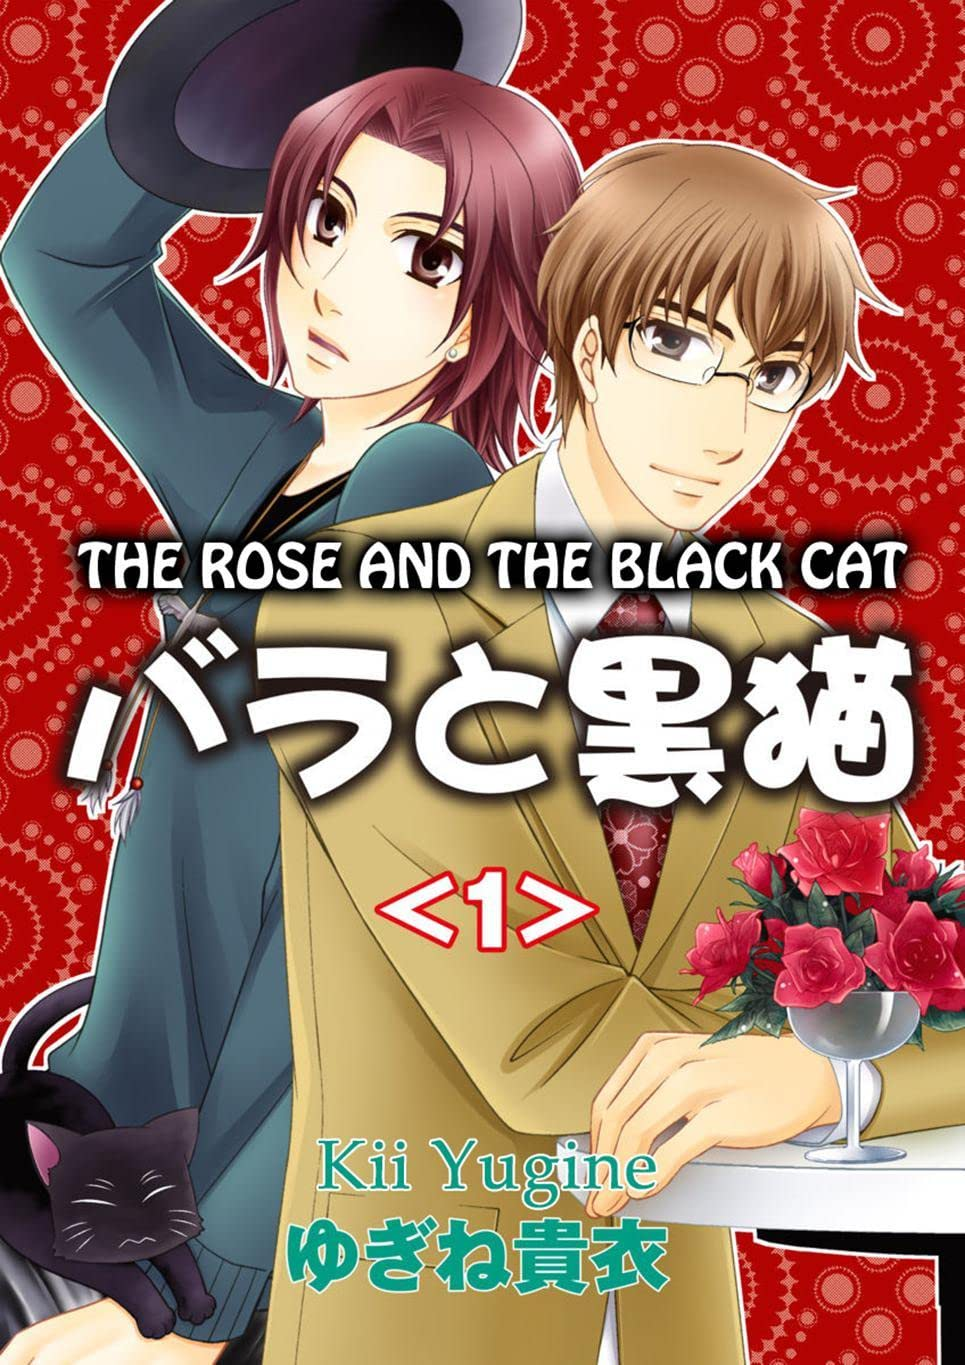 The Rose and The Black Cat (Yaoi Manga) Vol. 1